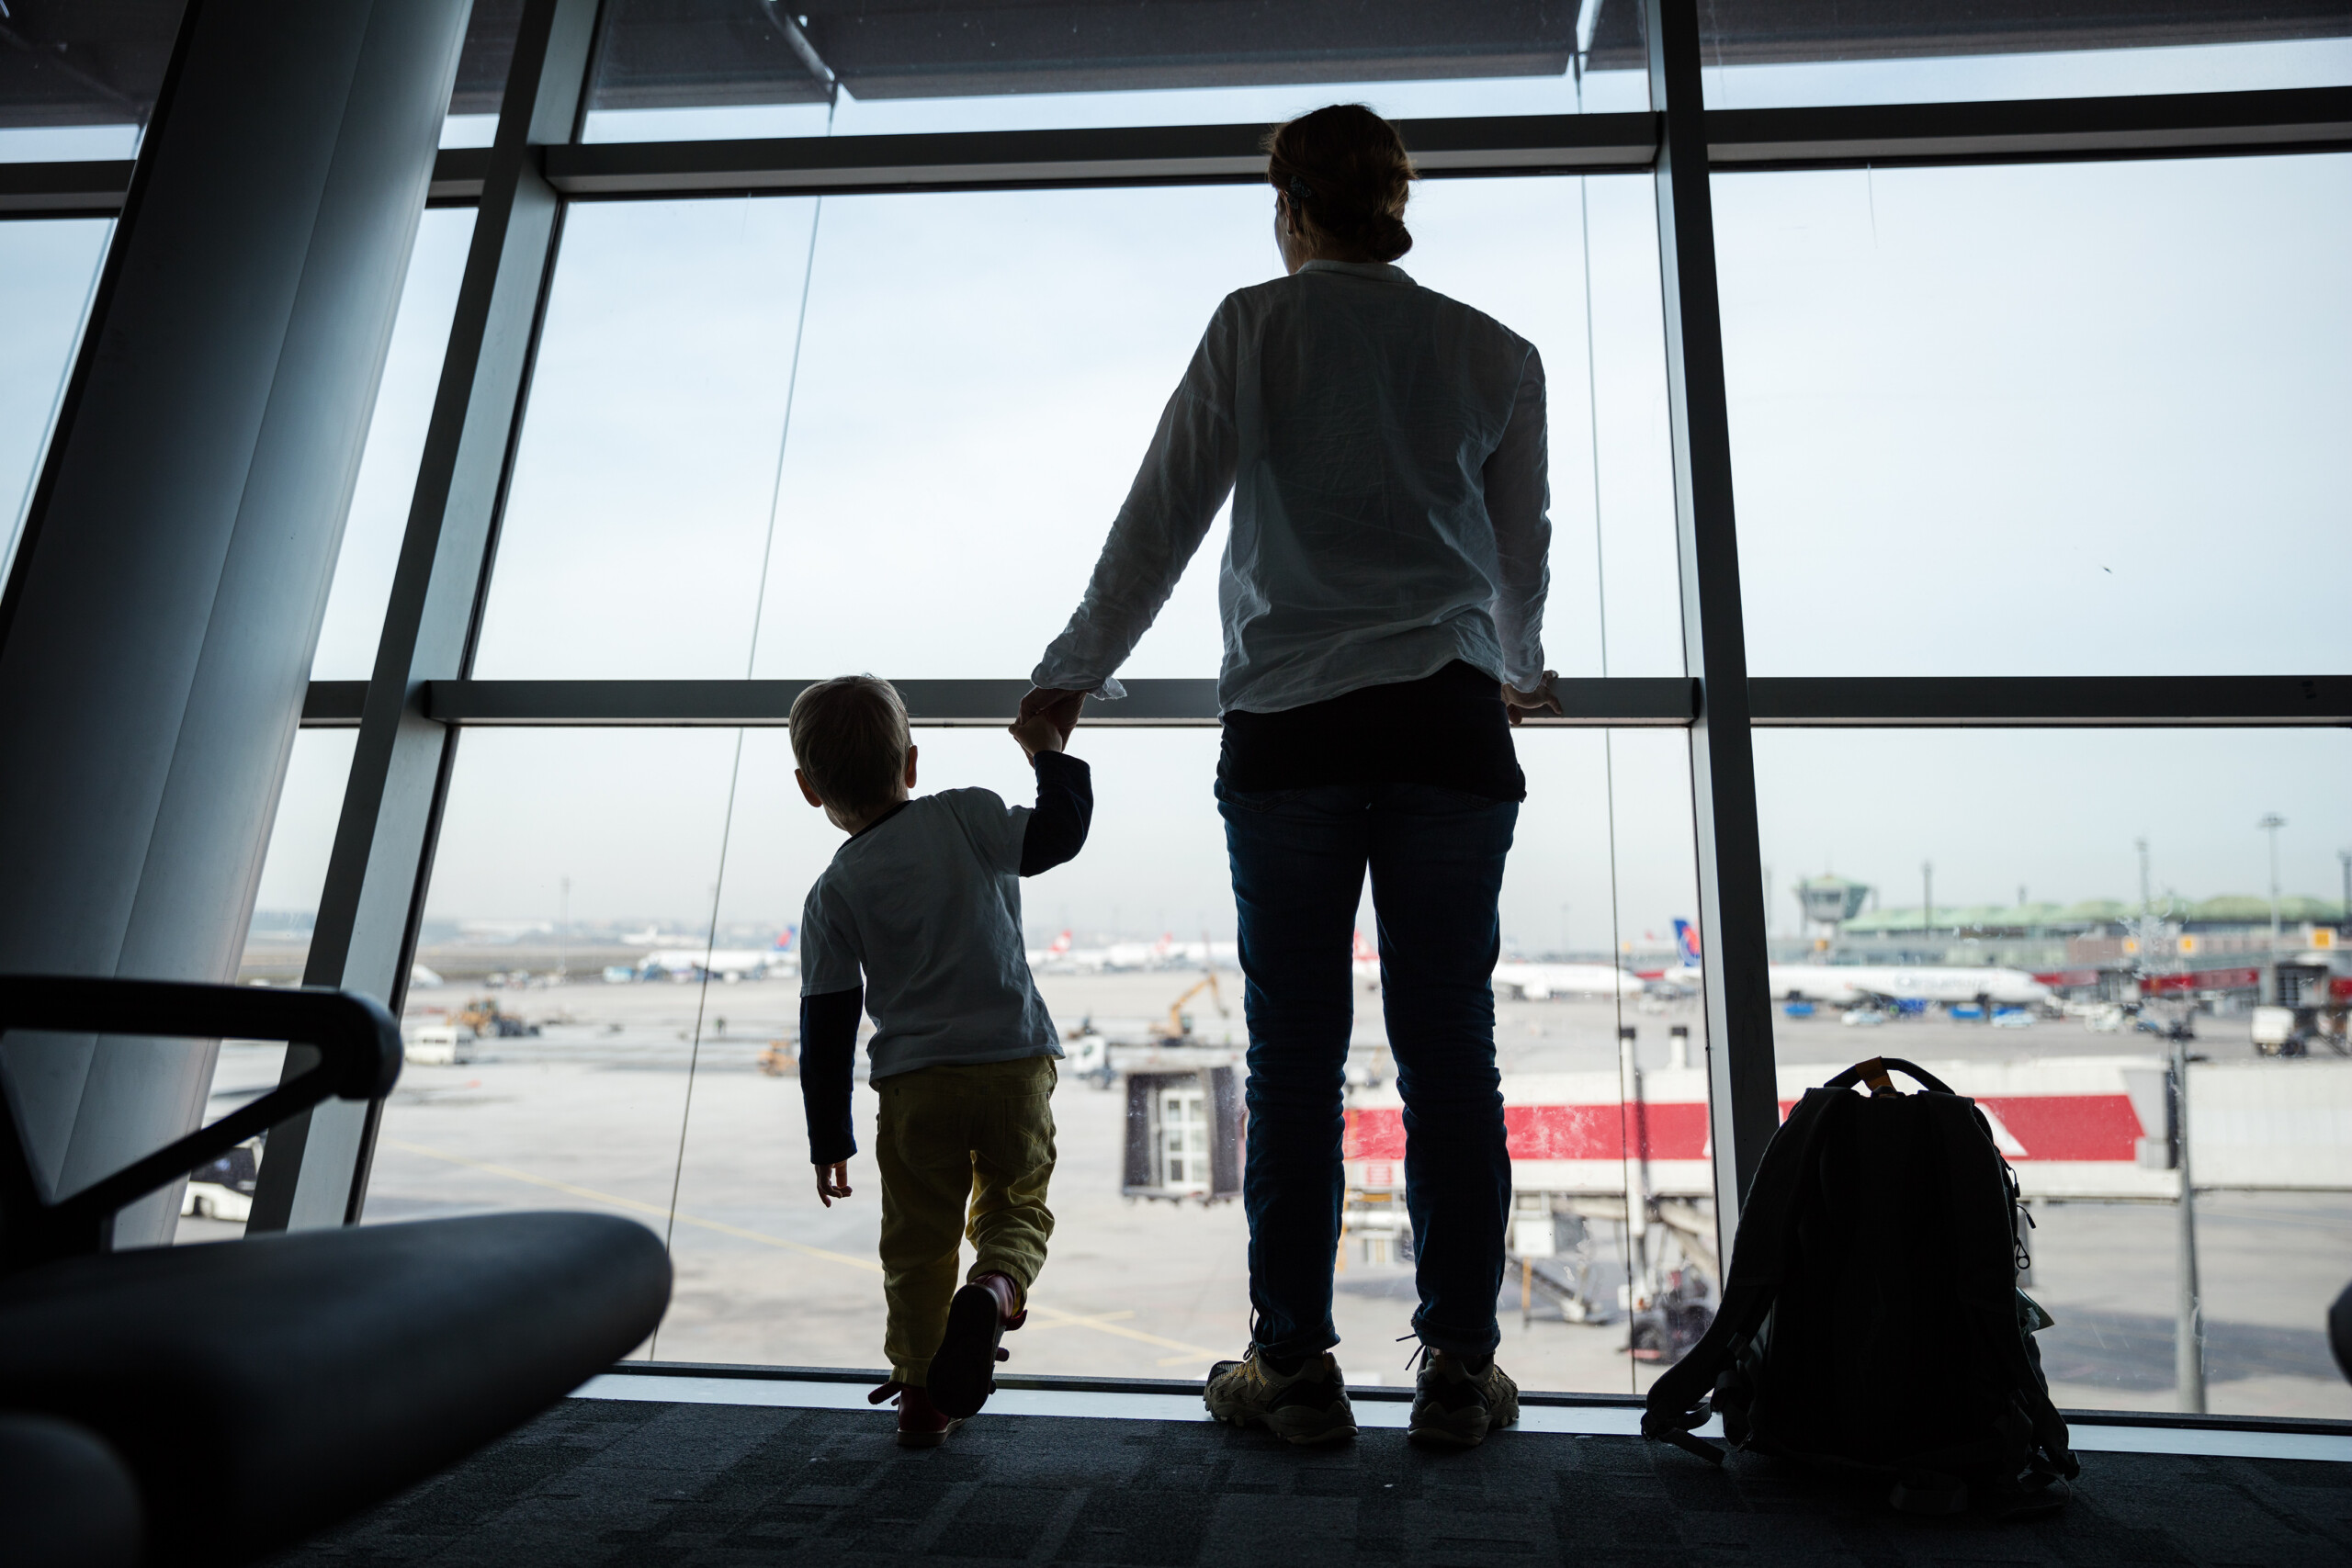 mother-and-son-standing-near-window-in-airport-and-PF6CSVE